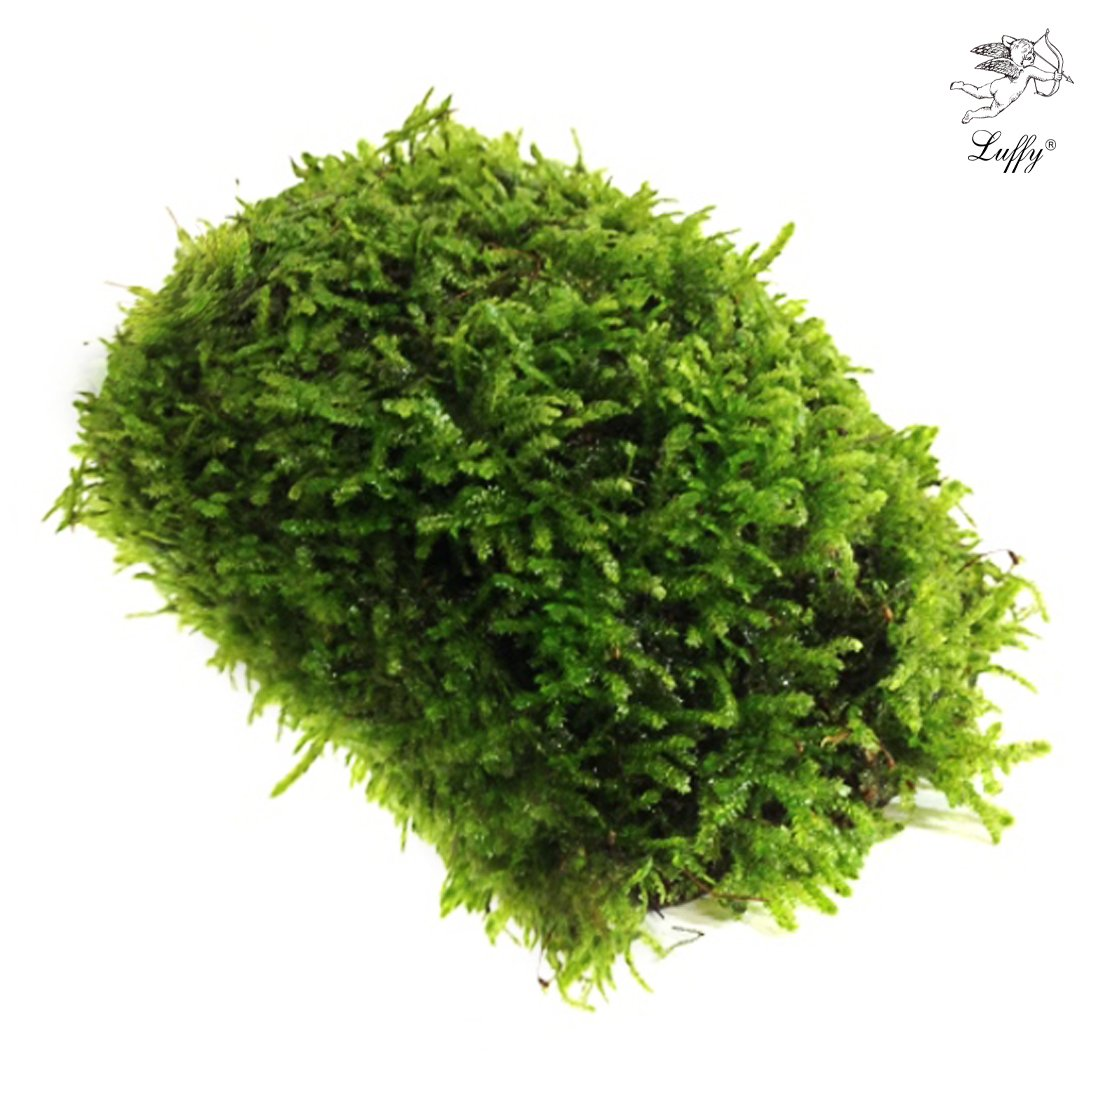 Luffy Coco Mini Moss - Builds a Beautiful and Natural Aquascape: Easy Care, Hardy and Long Lasting Plant: Filters and Provides Aquariums with Oxygen (Moss Stick)